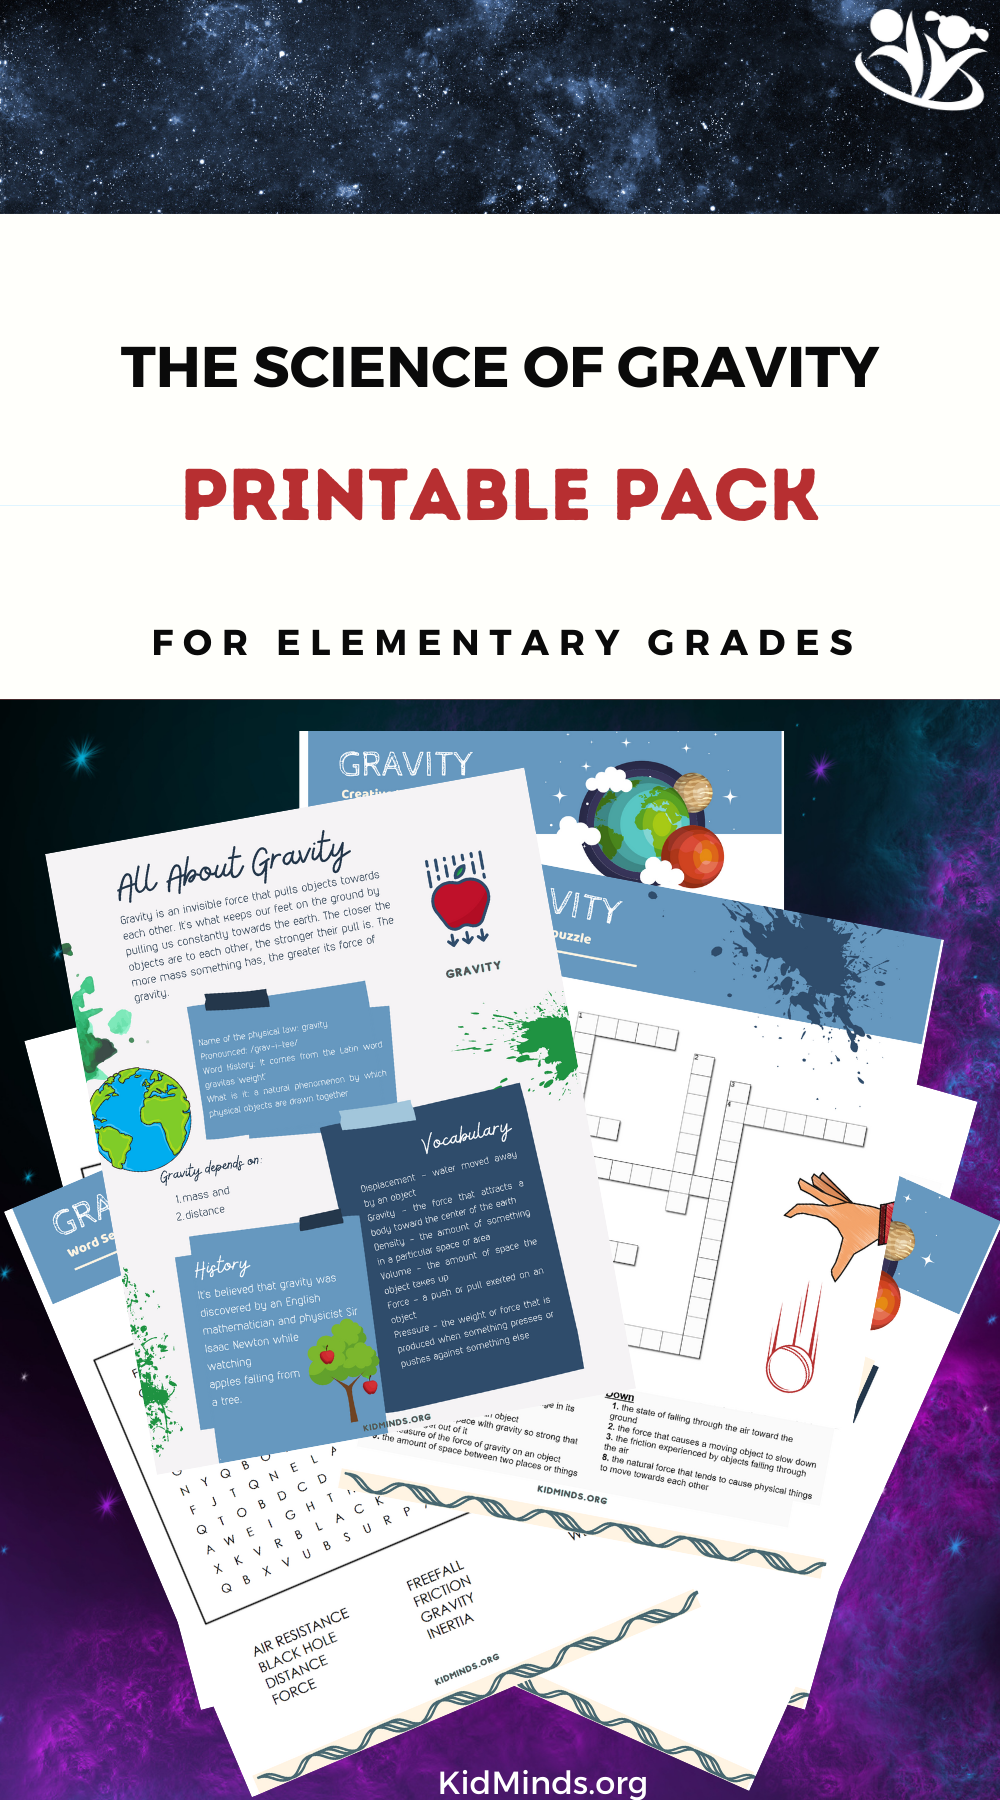 In this fun learning pack, there is plenty of opportunity to learn about gravity and inertia. #kidsactivities #STEM #cardboardbox #kidminds #handsonlearning #laughingkidslearn #marbles #learningallthetime